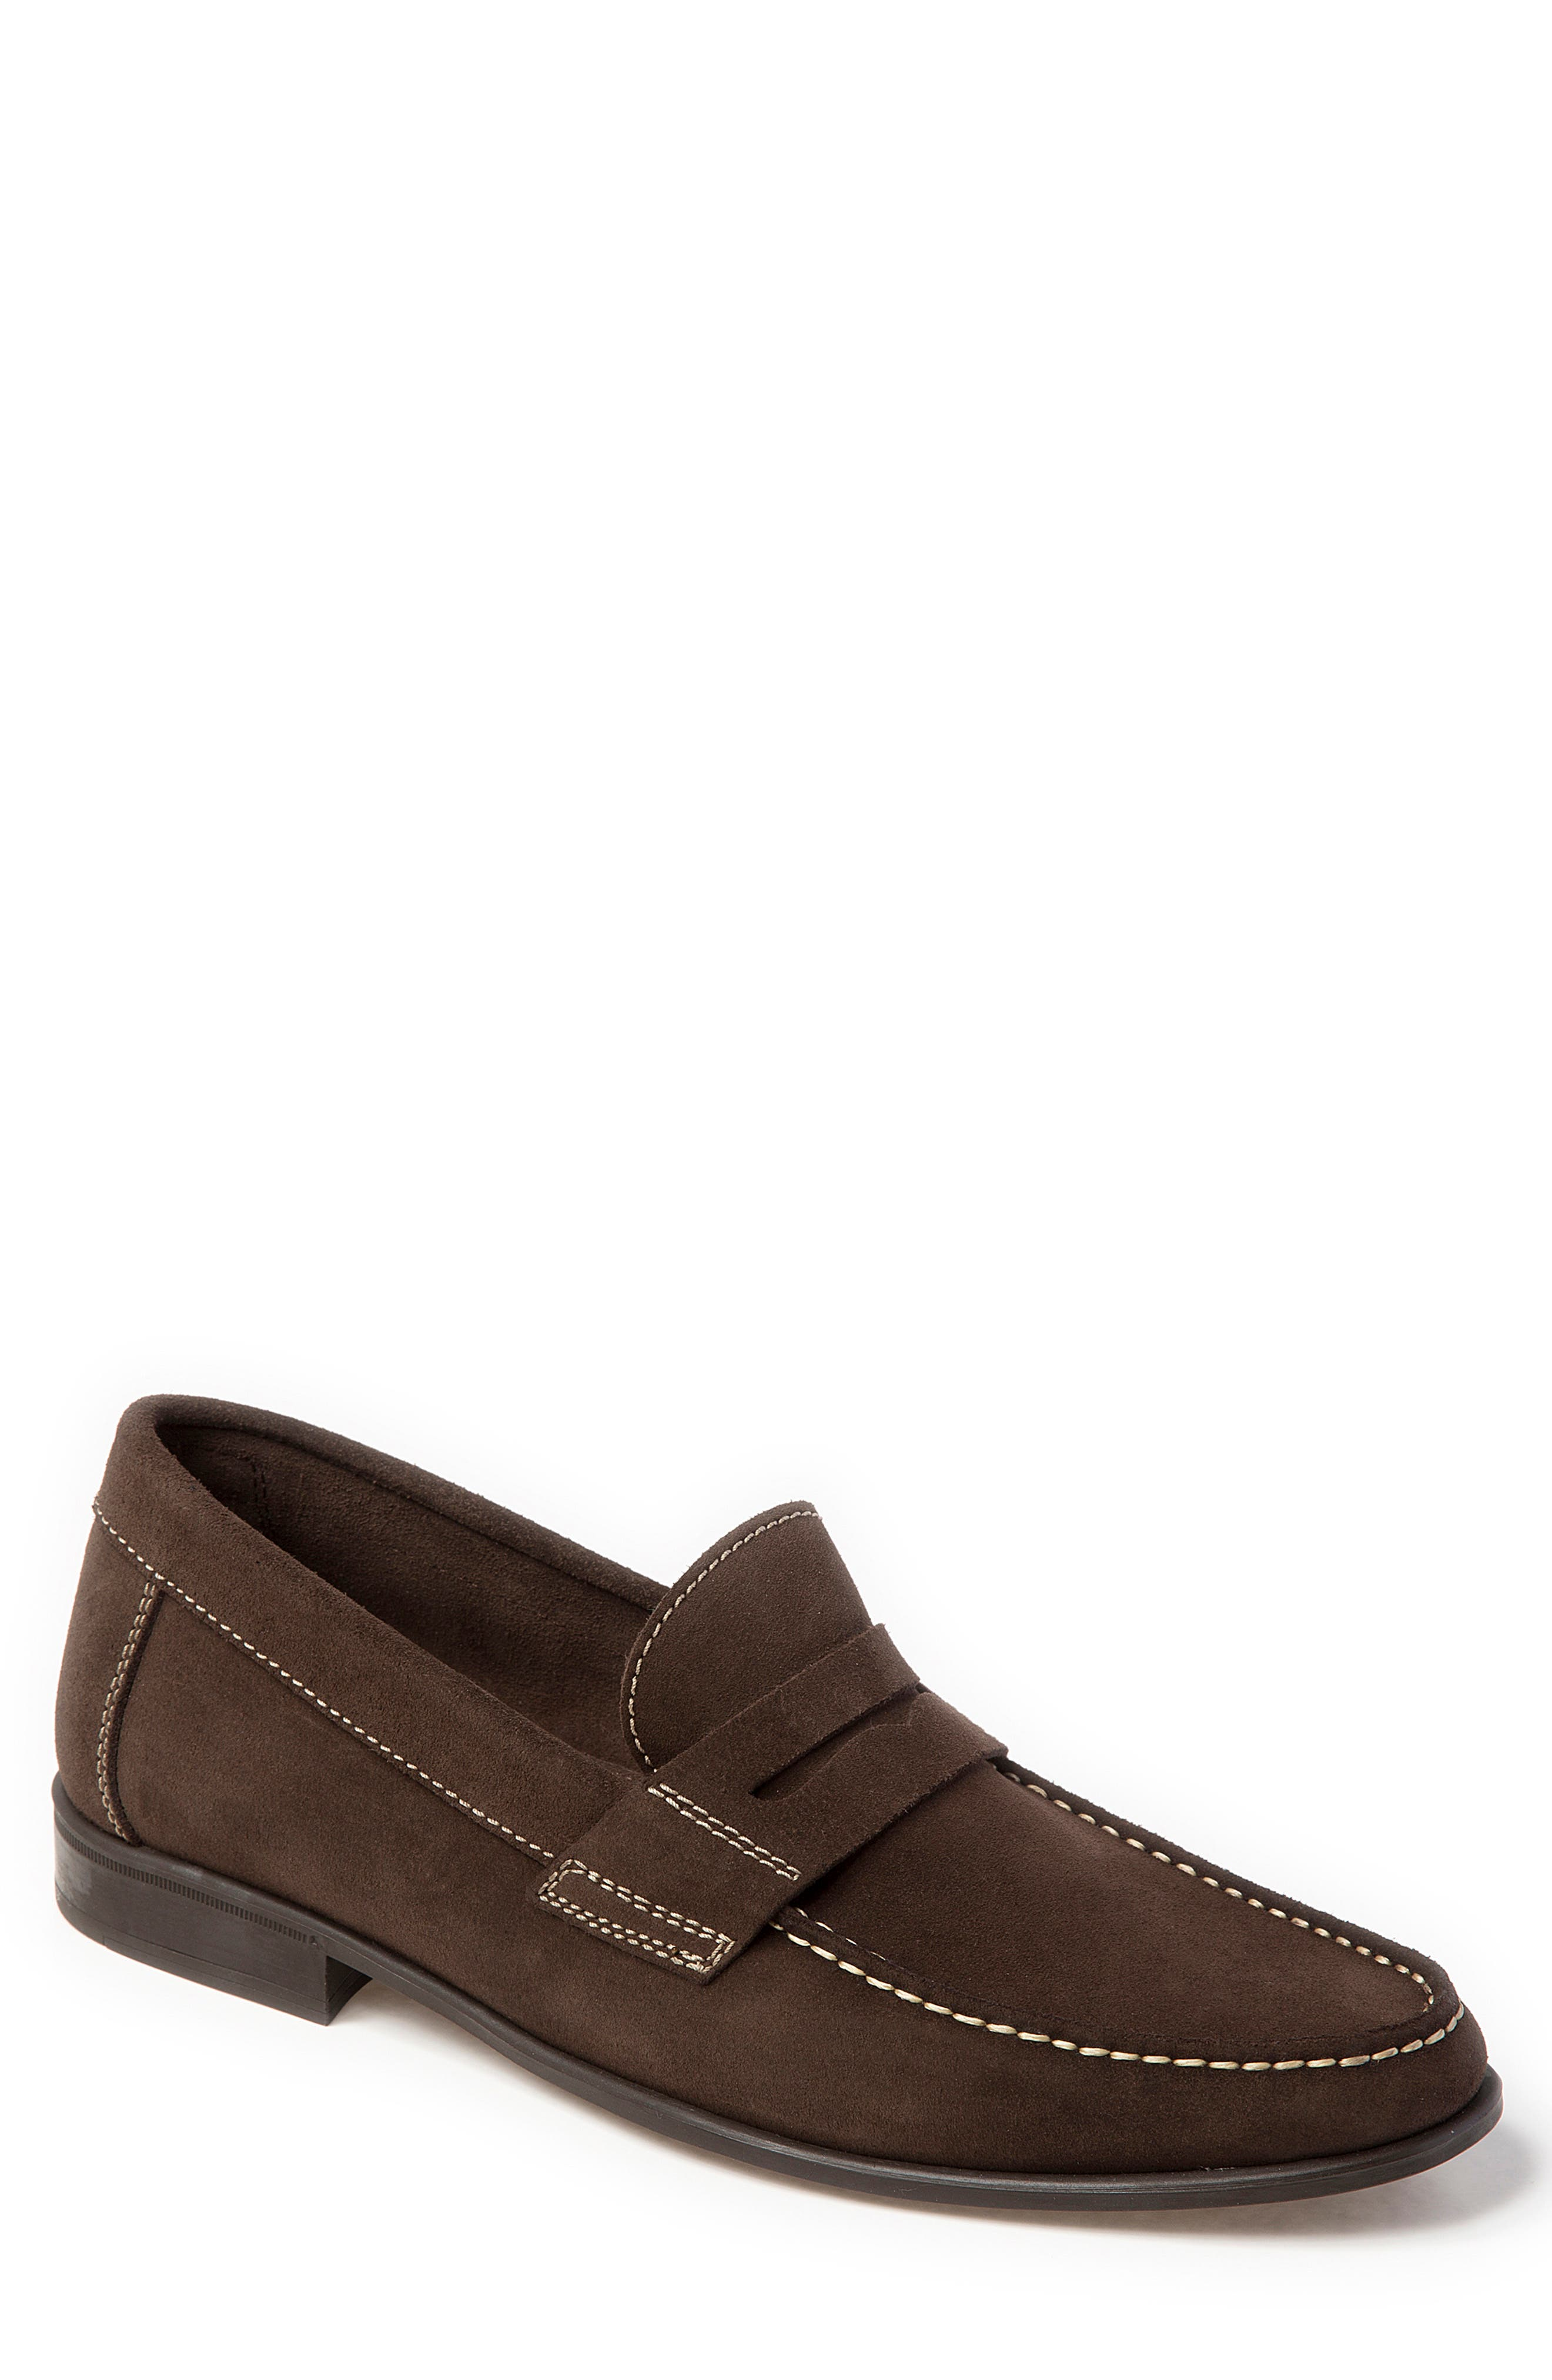 Sandro Moscoloni Leo Moc Toe Penny Loafer, Brown